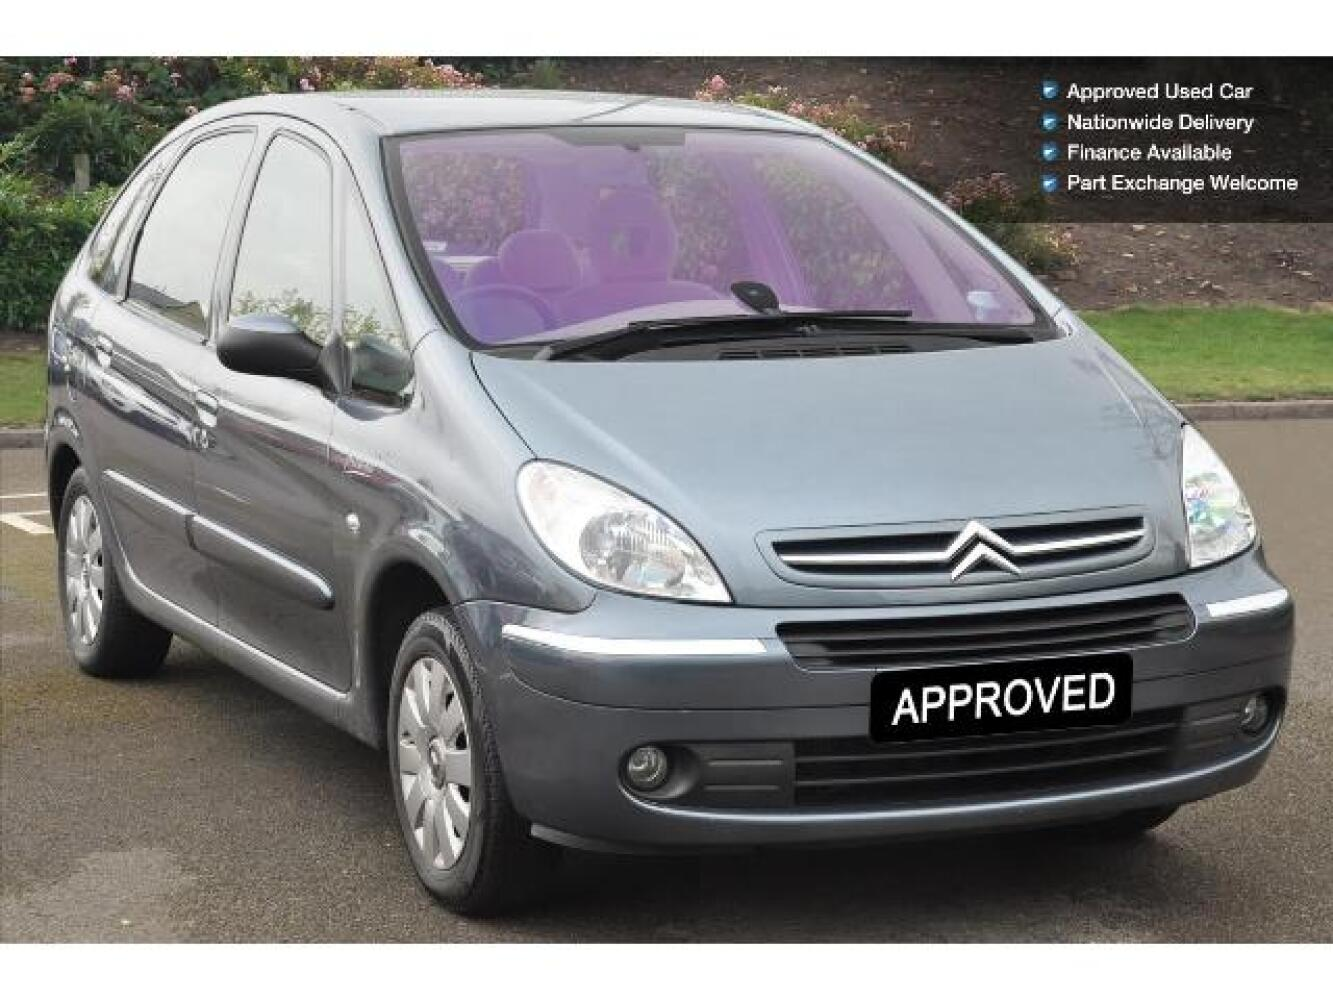 used citroen xsara picasso 1 6 hdi exclusive 5dr diesel estate for sale vertu honda. Black Bedroom Furniture Sets. Home Design Ideas